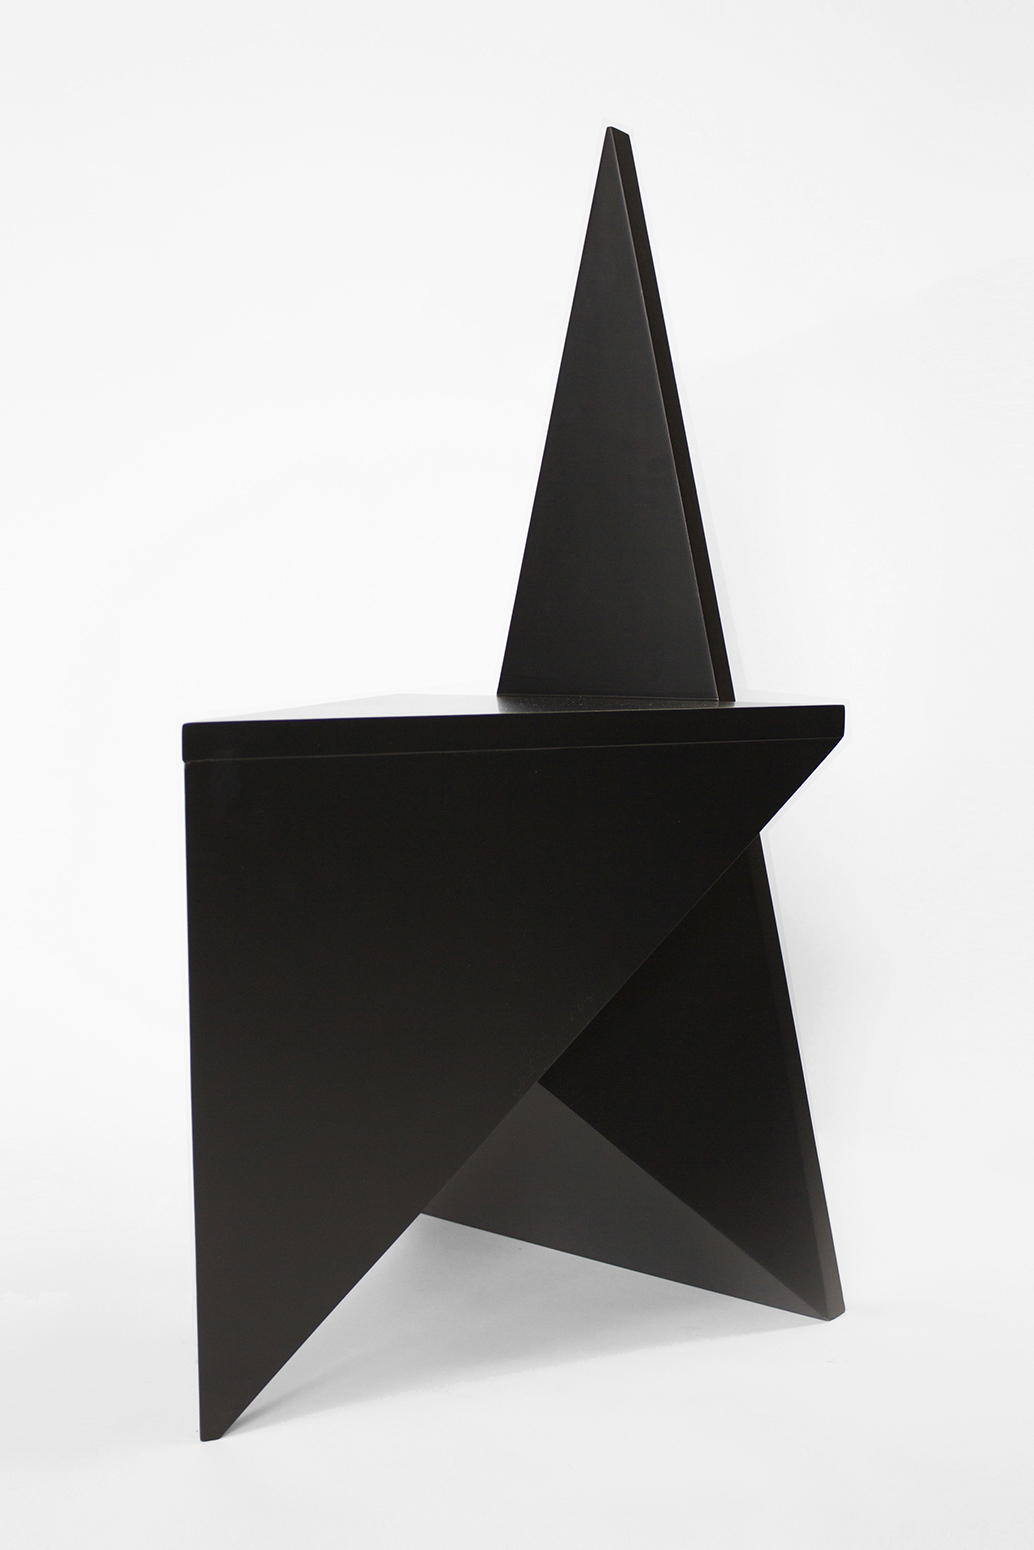 VANISHING TWIN CHAIR, 2015 BLACK PAINTED WOOD  PDF  -  INQUIRE  +  MORE